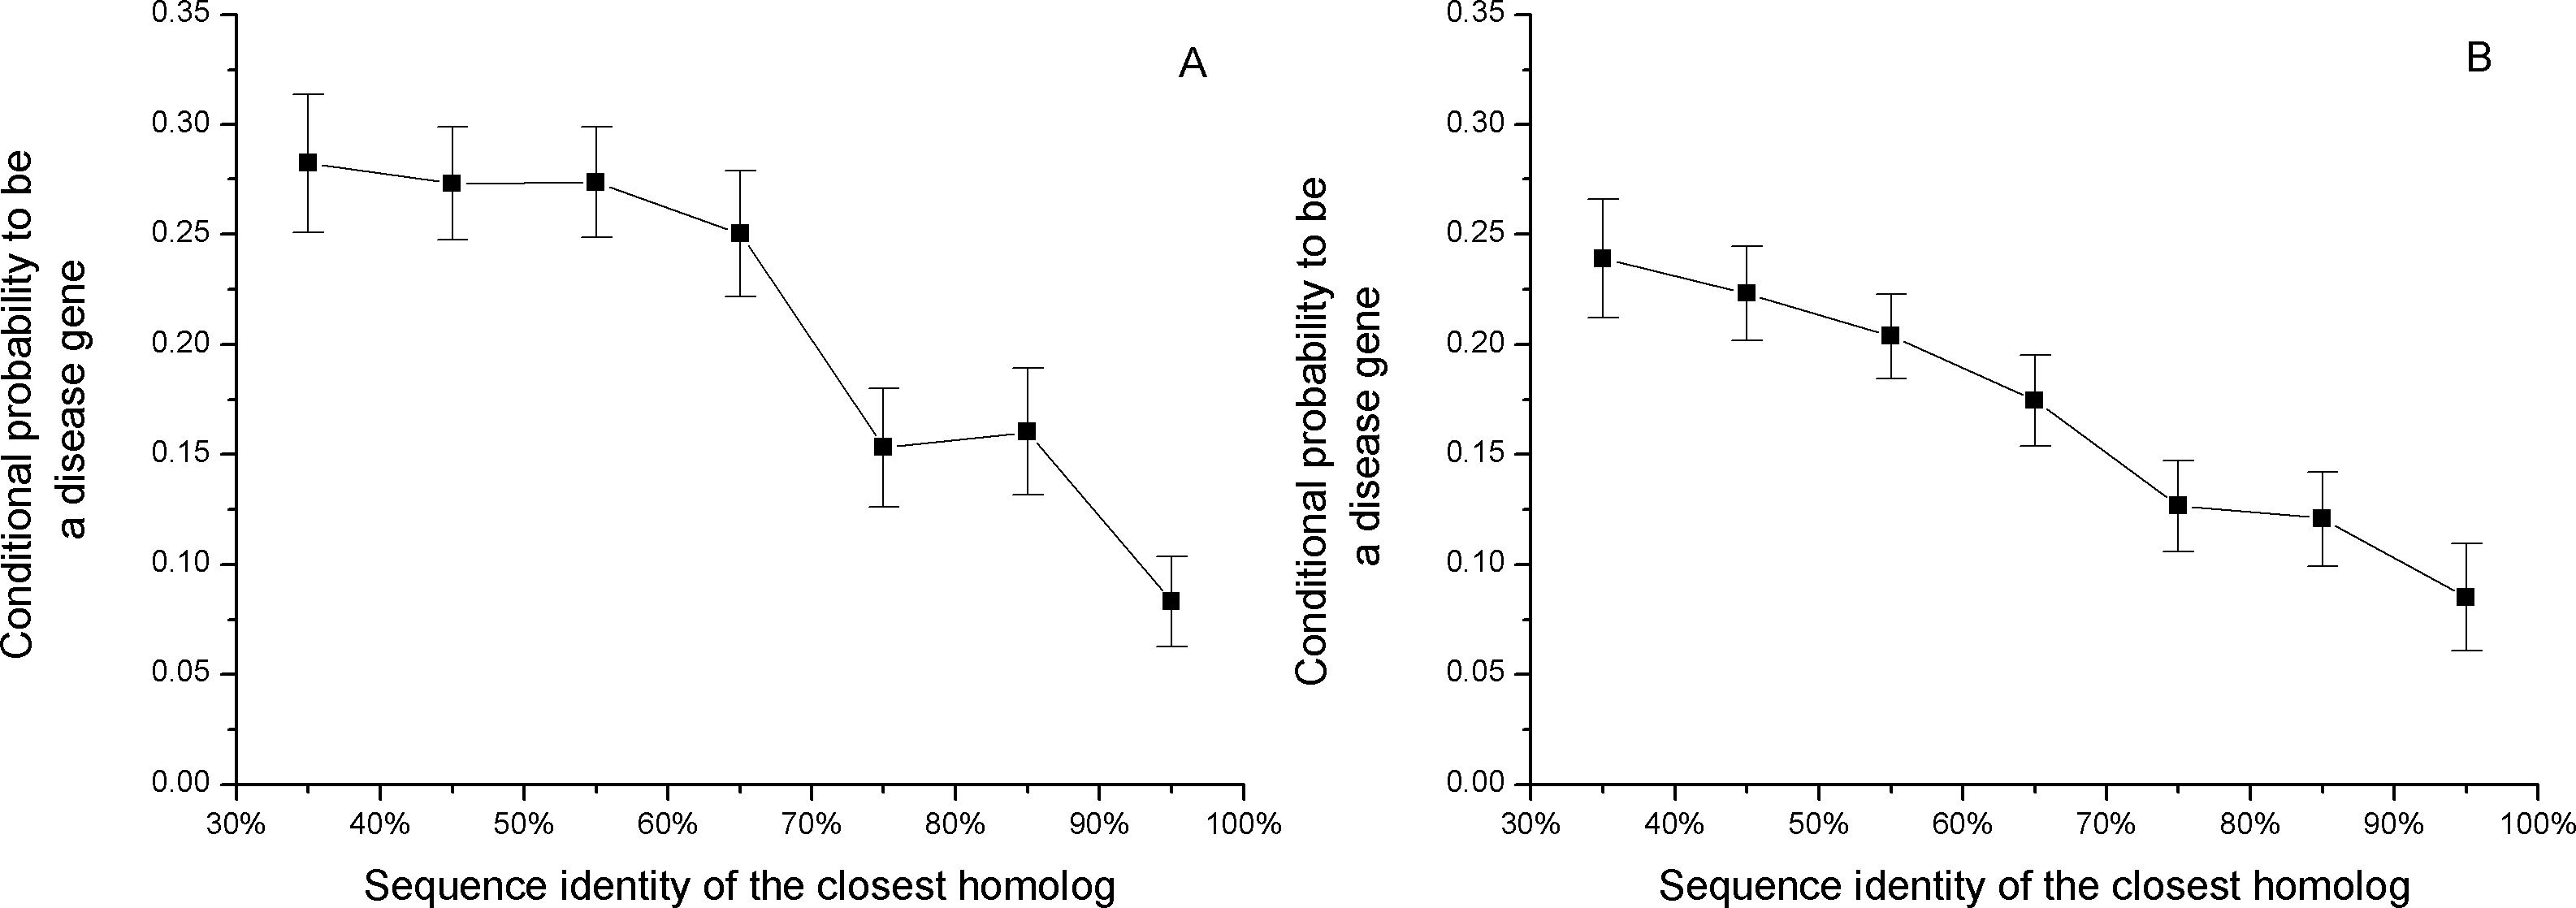 The relationship between the sequence identity of the closest homolog and the conditional probability of a disease gene, P(disease sequence_identity_of_closest_homolog).